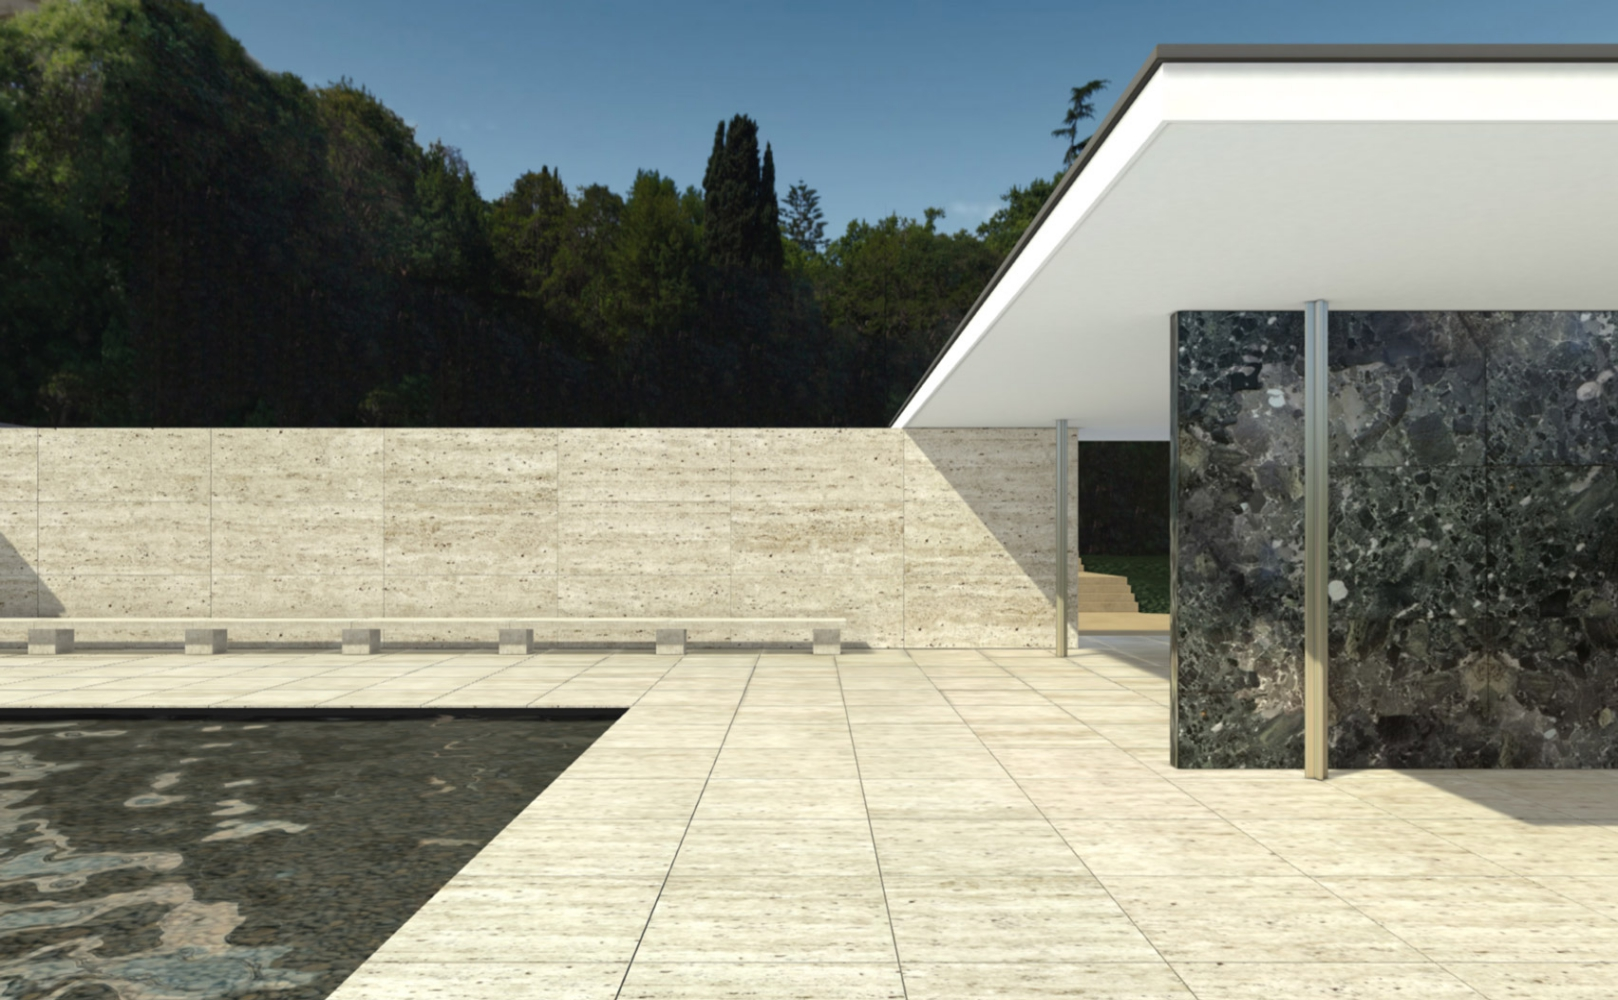 m classic barcelona pavilion mies van der rohe. Black Bedroom Furniture Sets. Home Design Ideas